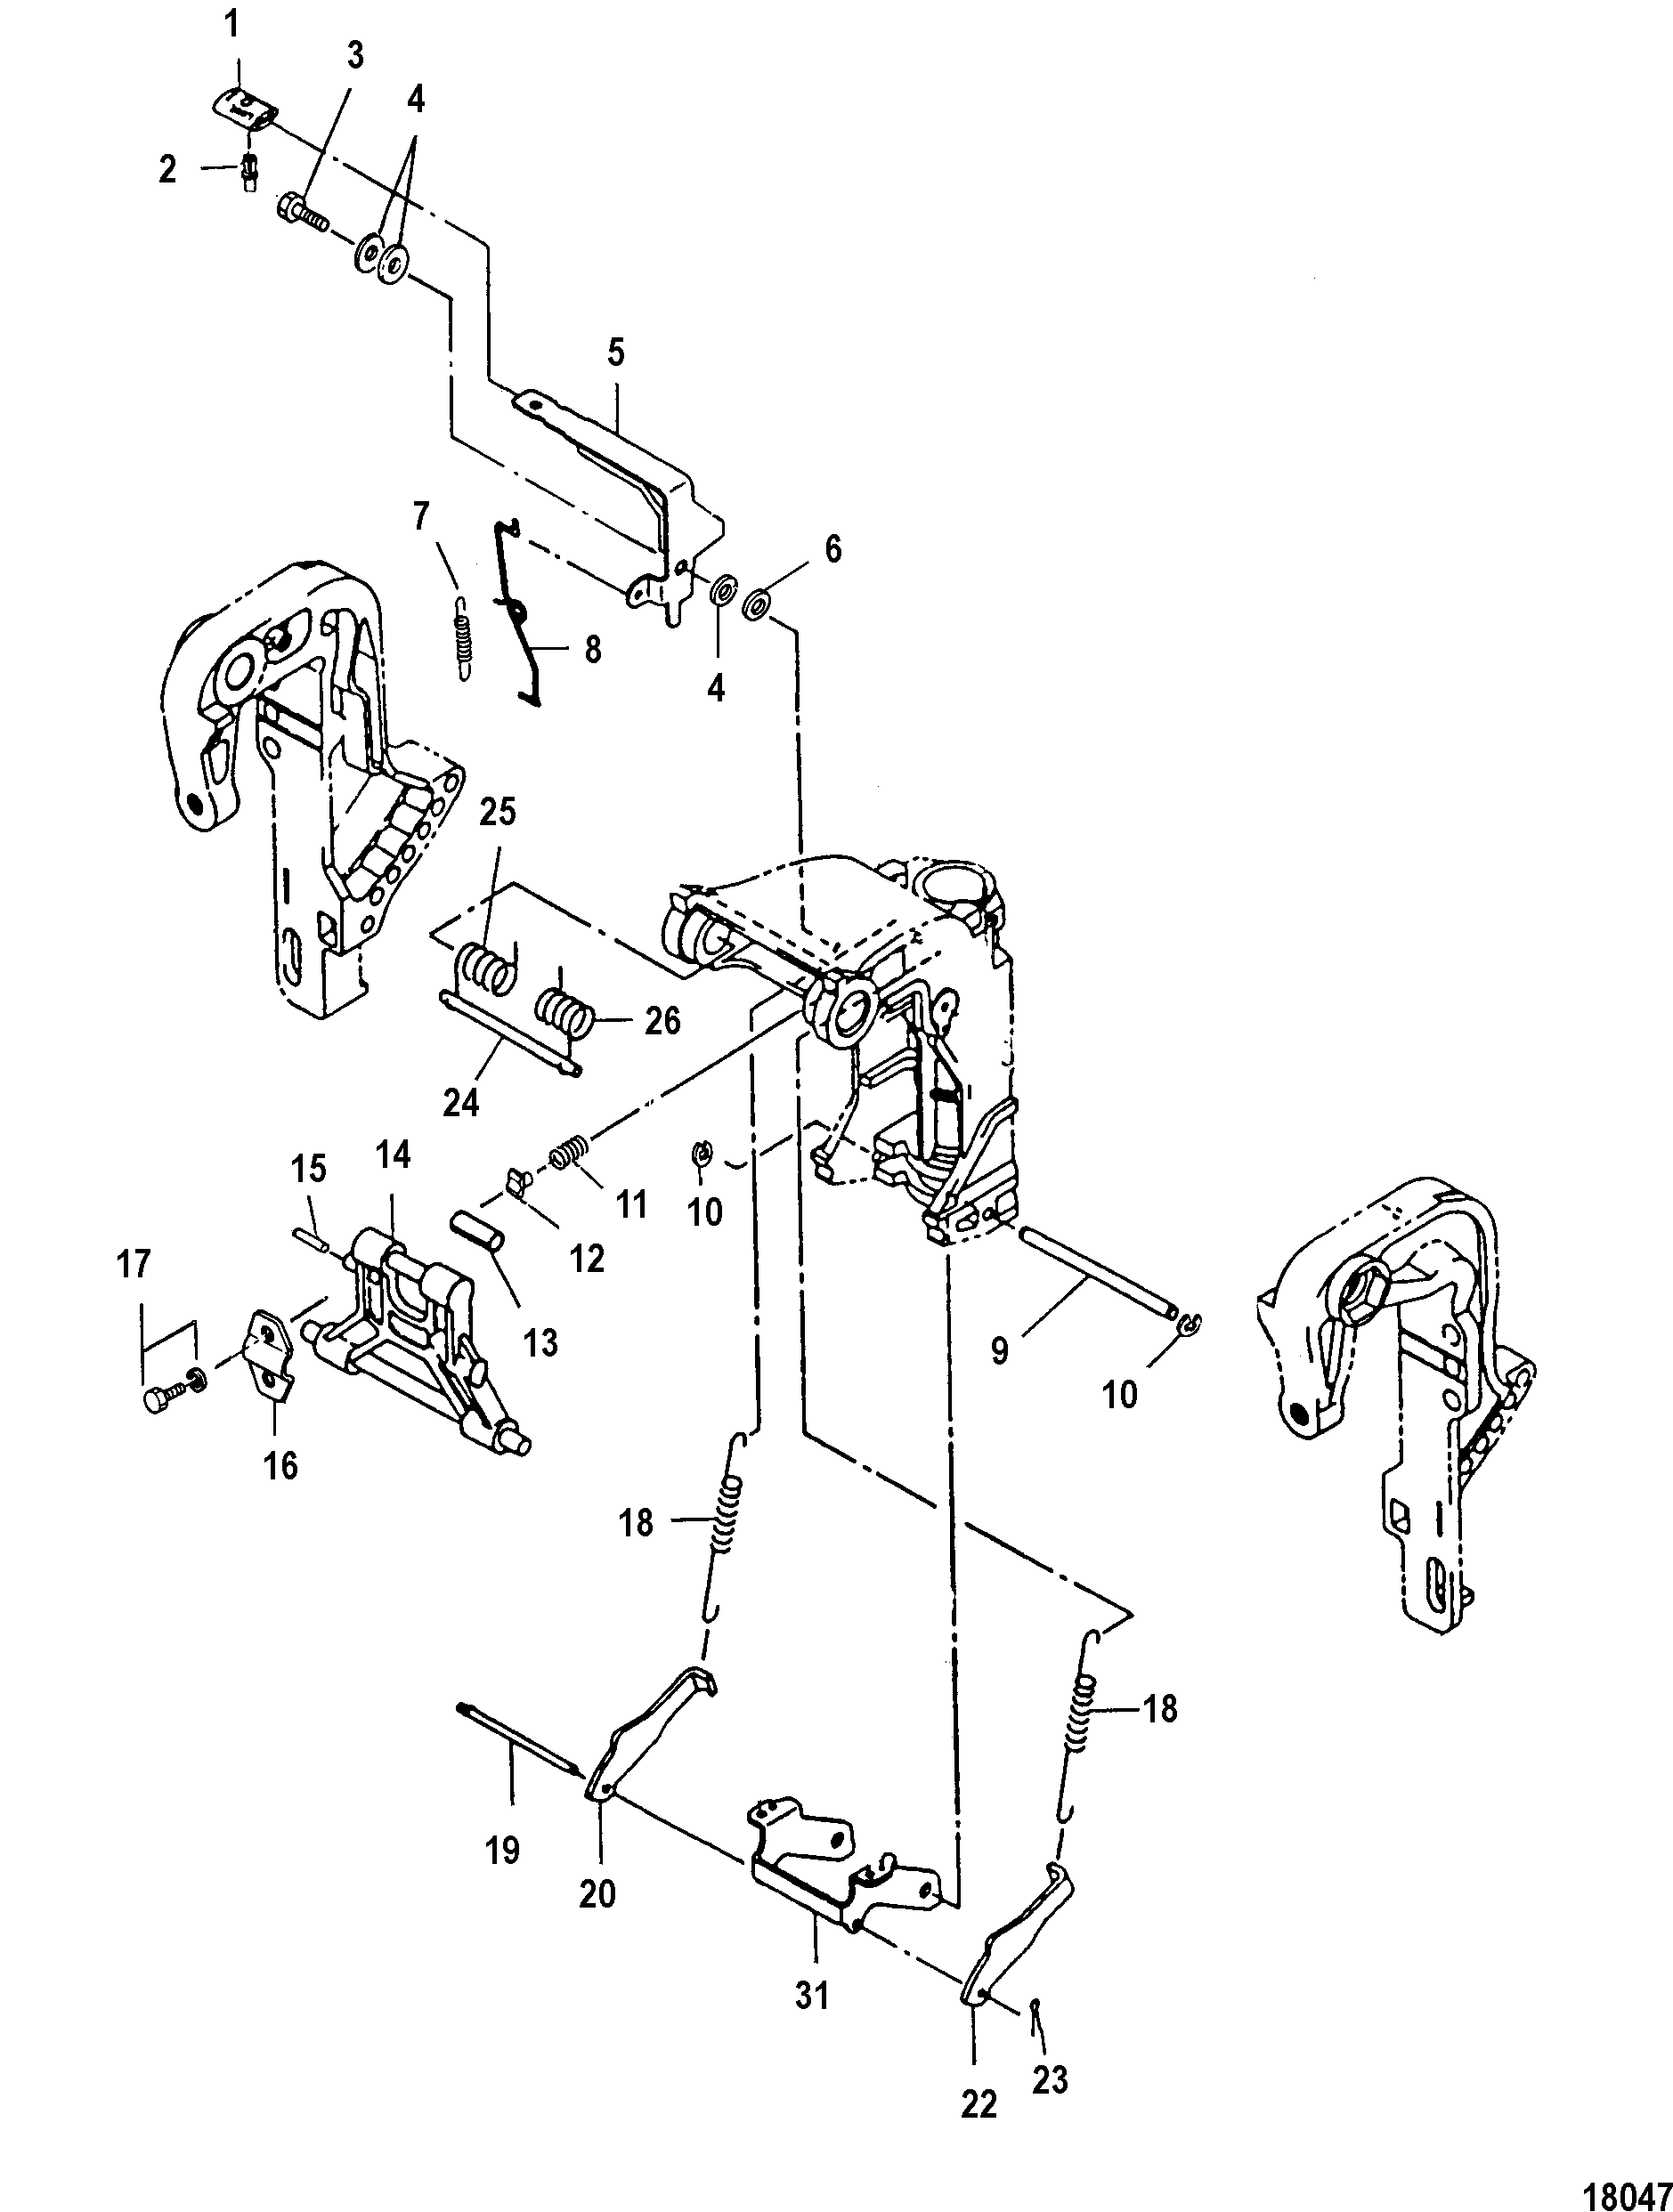 2001 mercruiser 3 0 engine diagram